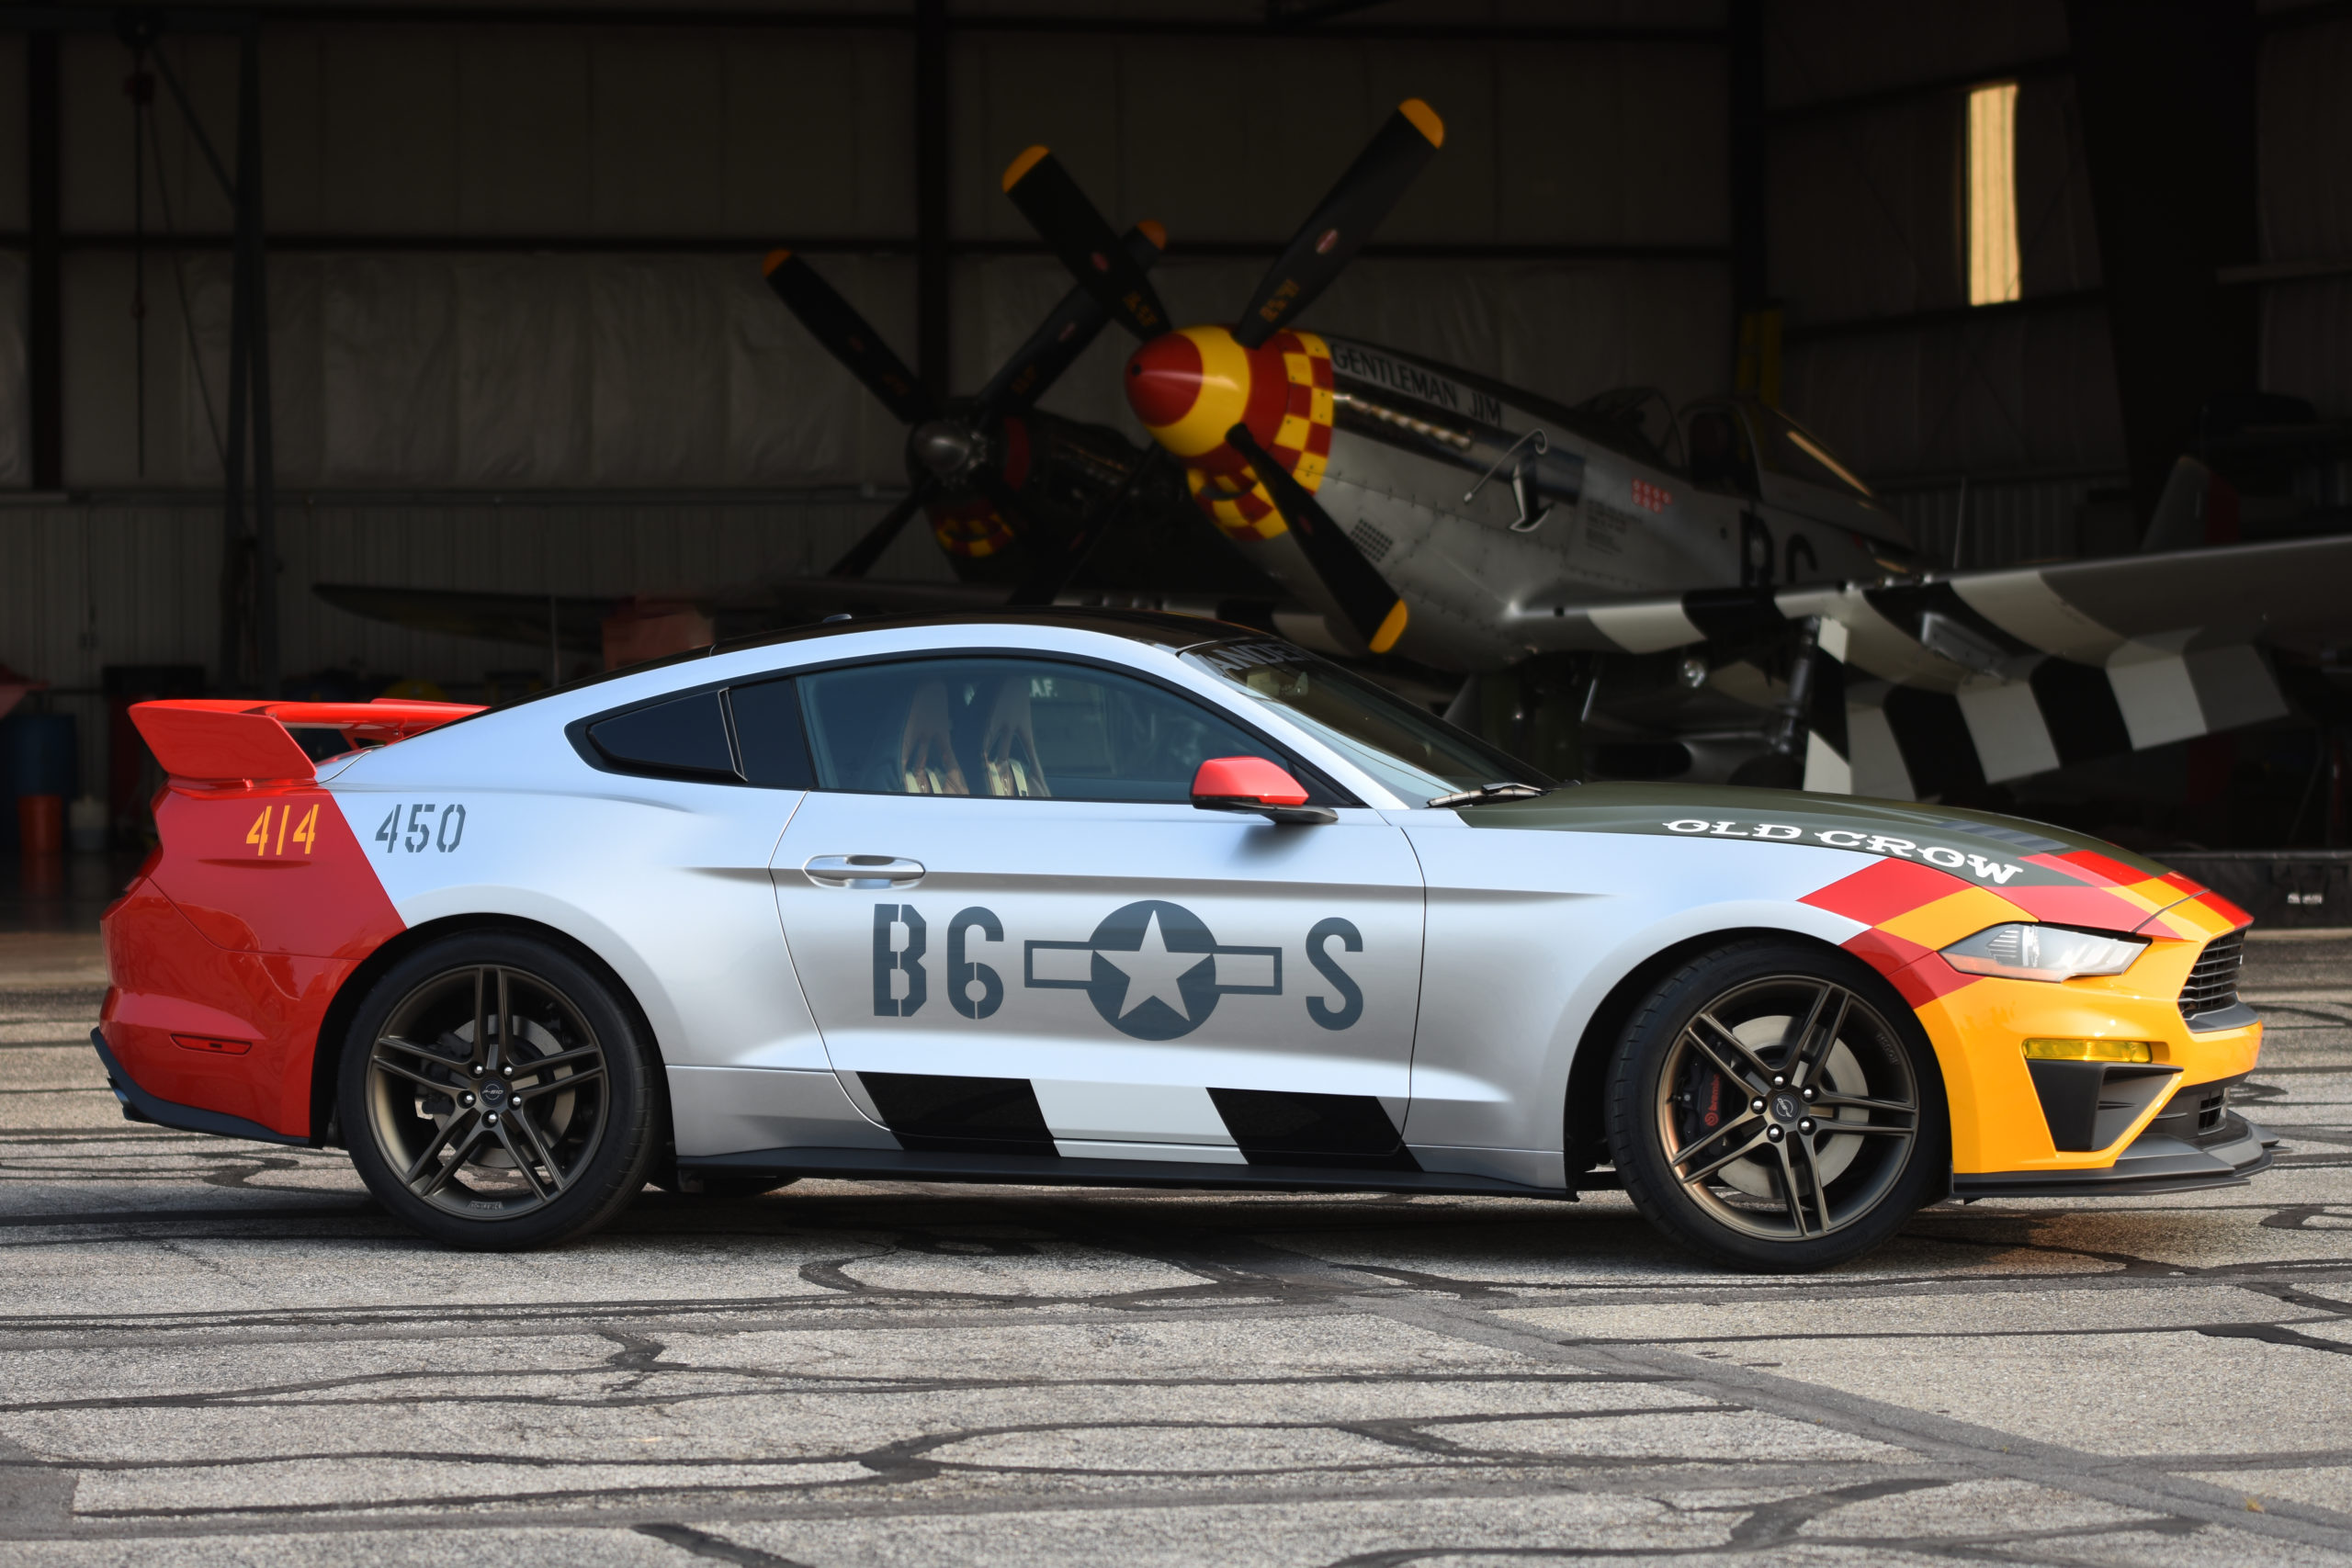 2019 Old Crow Mustang GT by Ford and Roush Performance pays homage to World War II triple ace pilot Colonel Bud Anderson.